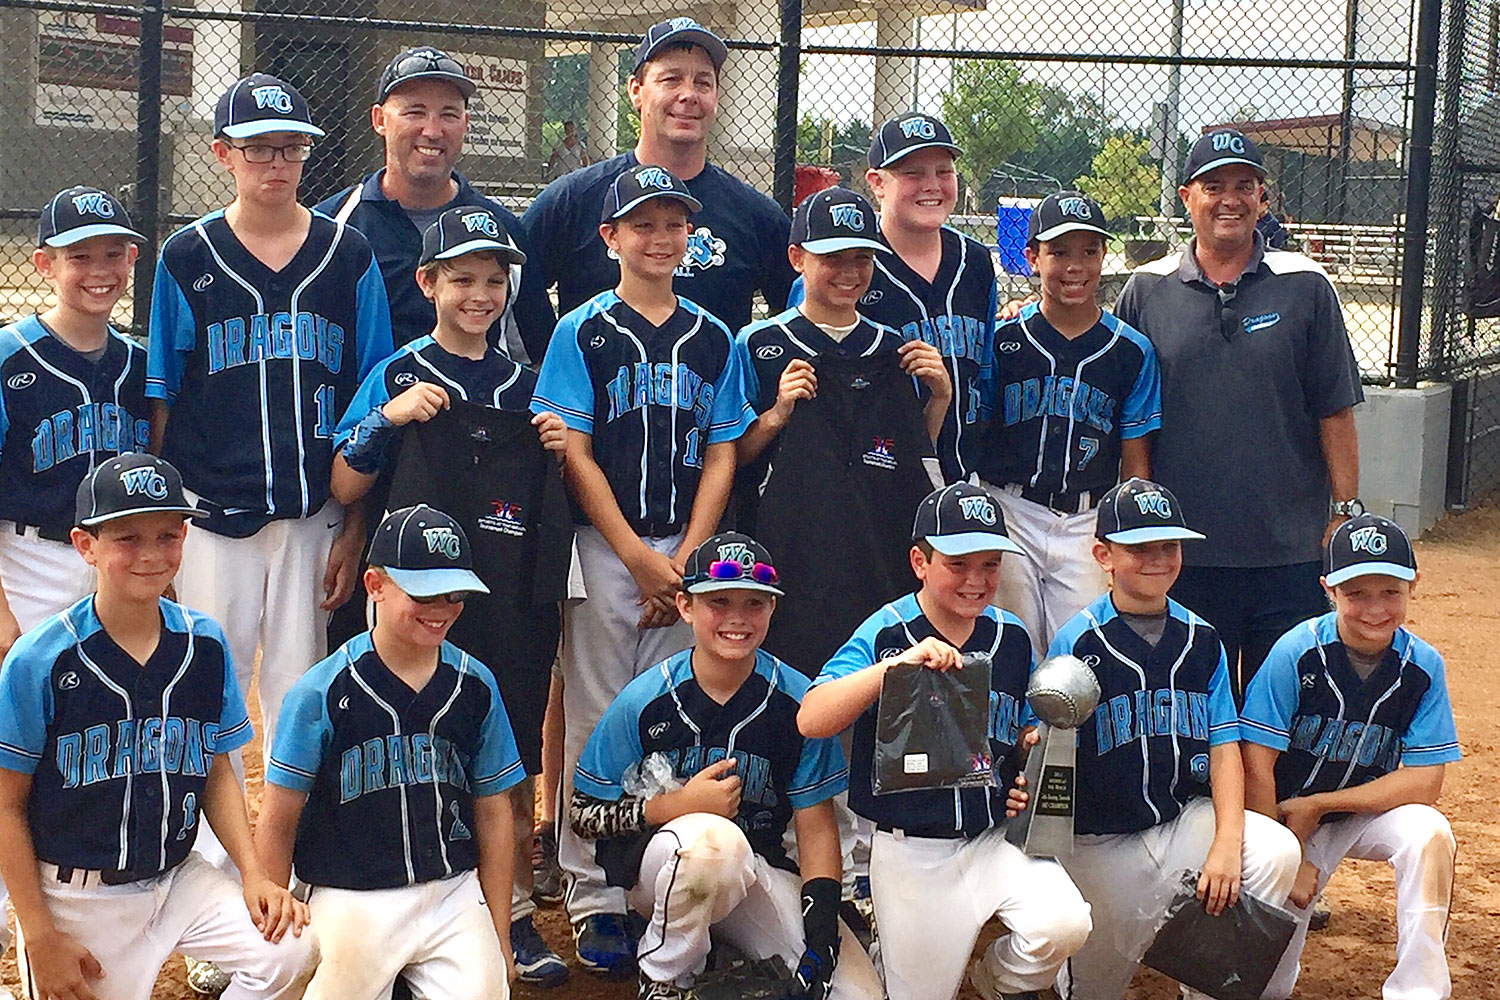 10u West Chester Dragons NL Travel Baseball won the 7th Inning Stretch Tournament 2017 at Sports At The Beach on July 21-23, 2017